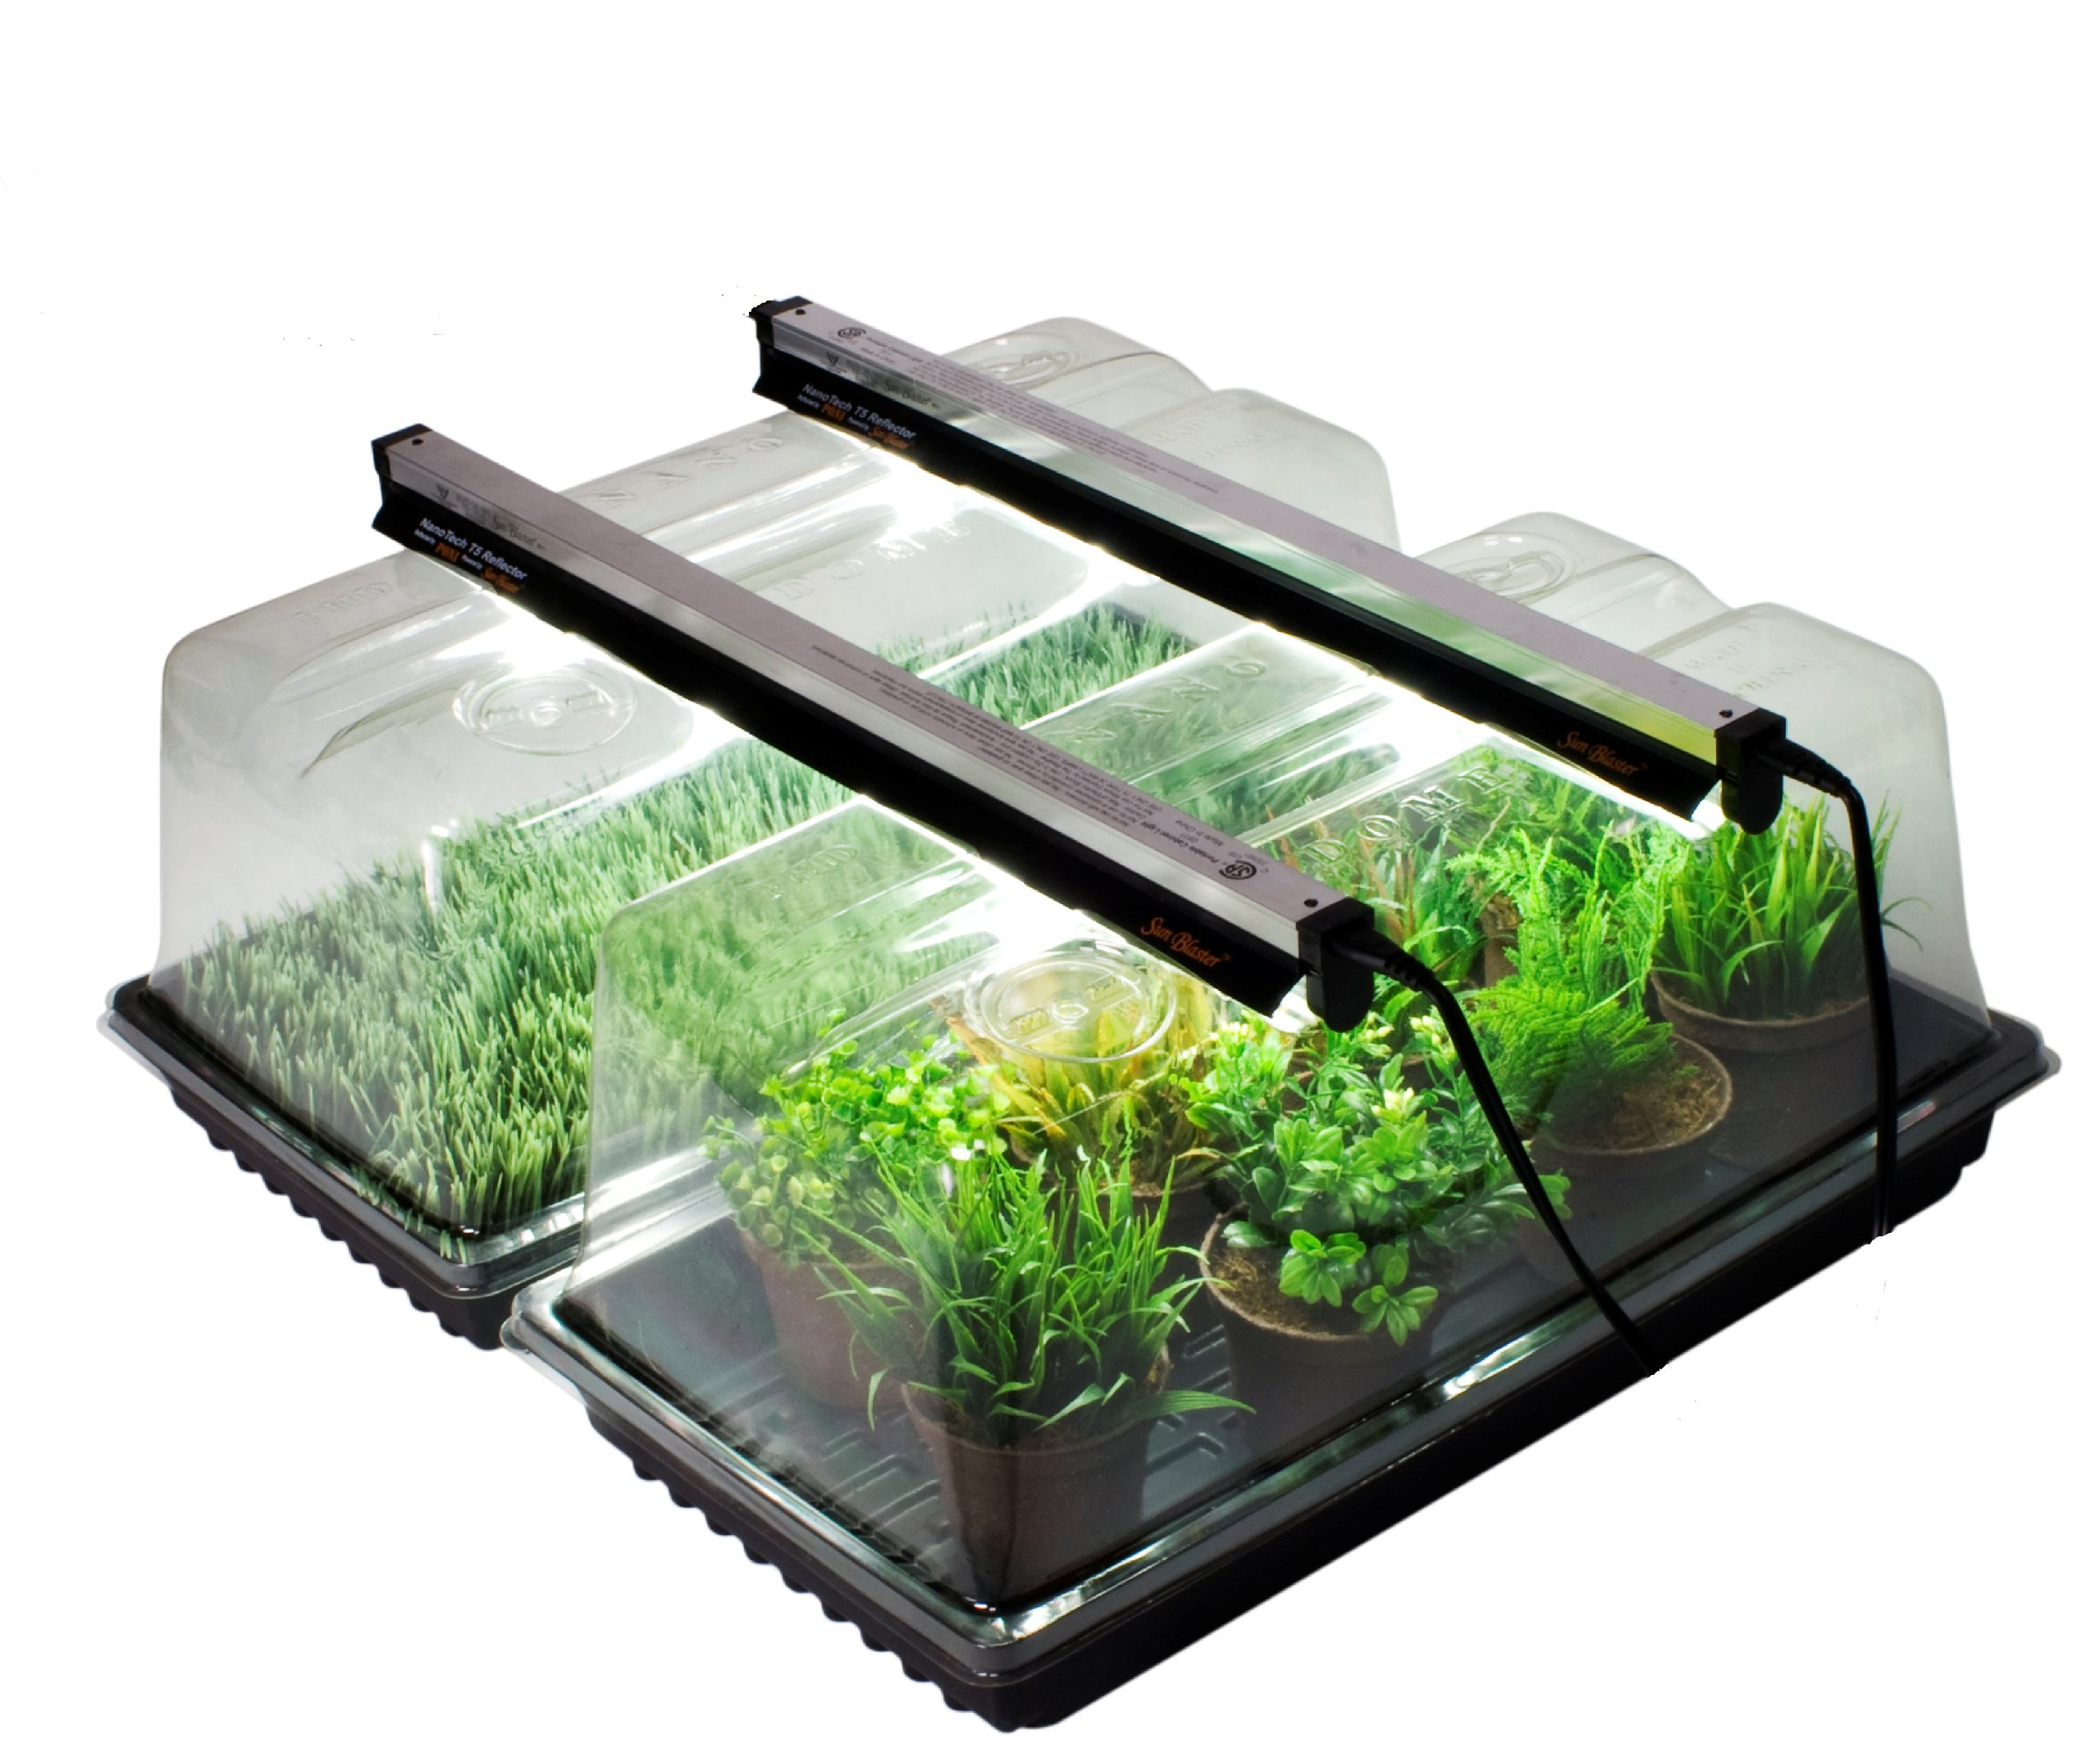 2 Pack of Mini Greenhouses for Germination and Propagation includes 2x 18'' T5 HO Fluorescents, 2x Nano Reflector, 2x Nano Dome, 2x Quadruple thick Plant Trays by SunBlaster